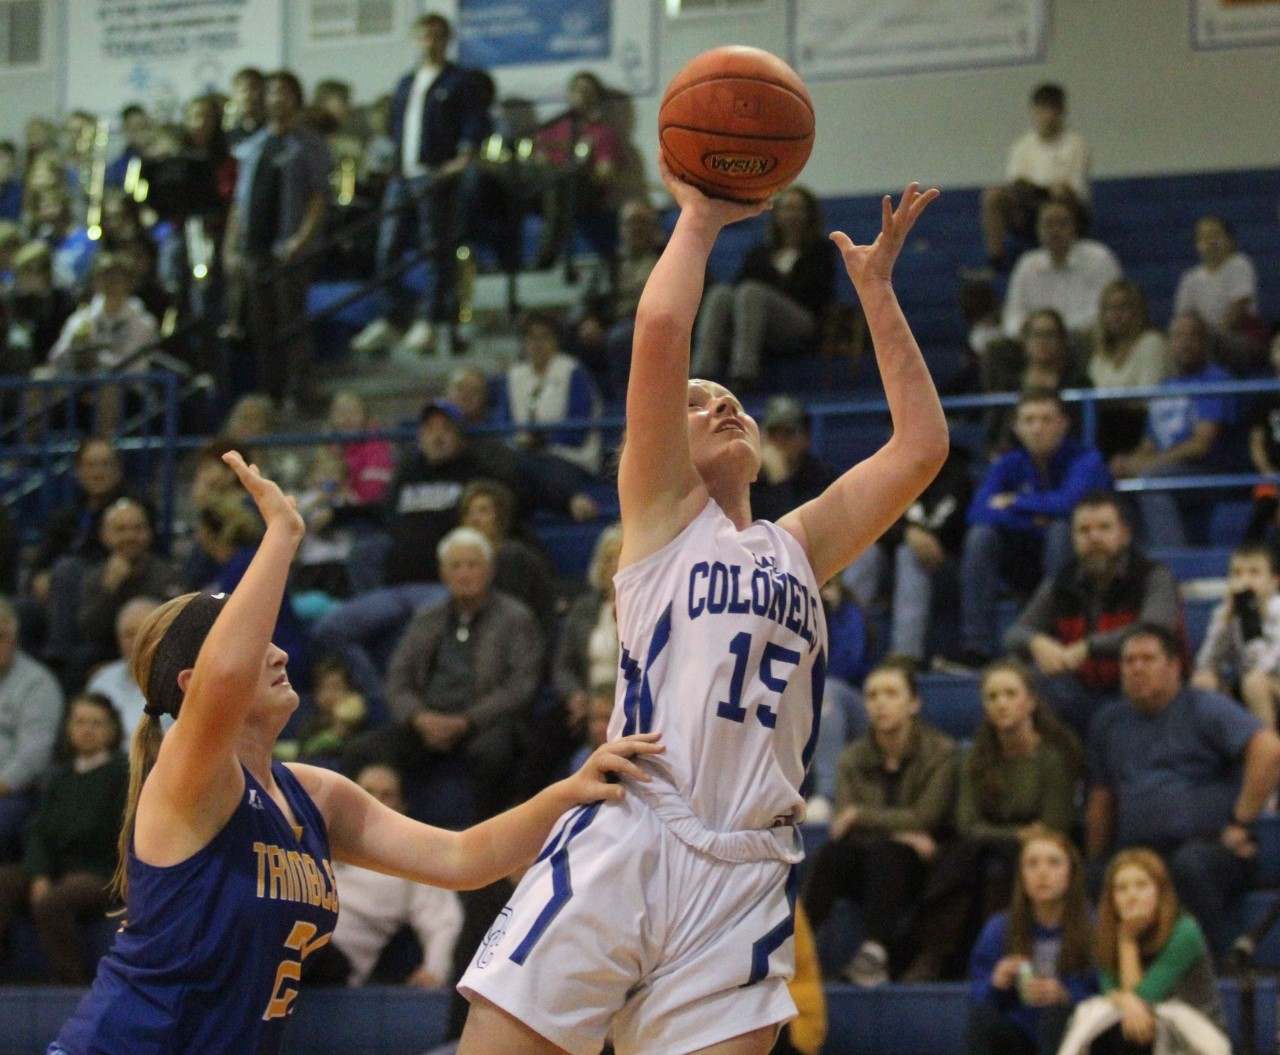 Clark Joins the Lady Colonels 1,000 point club.